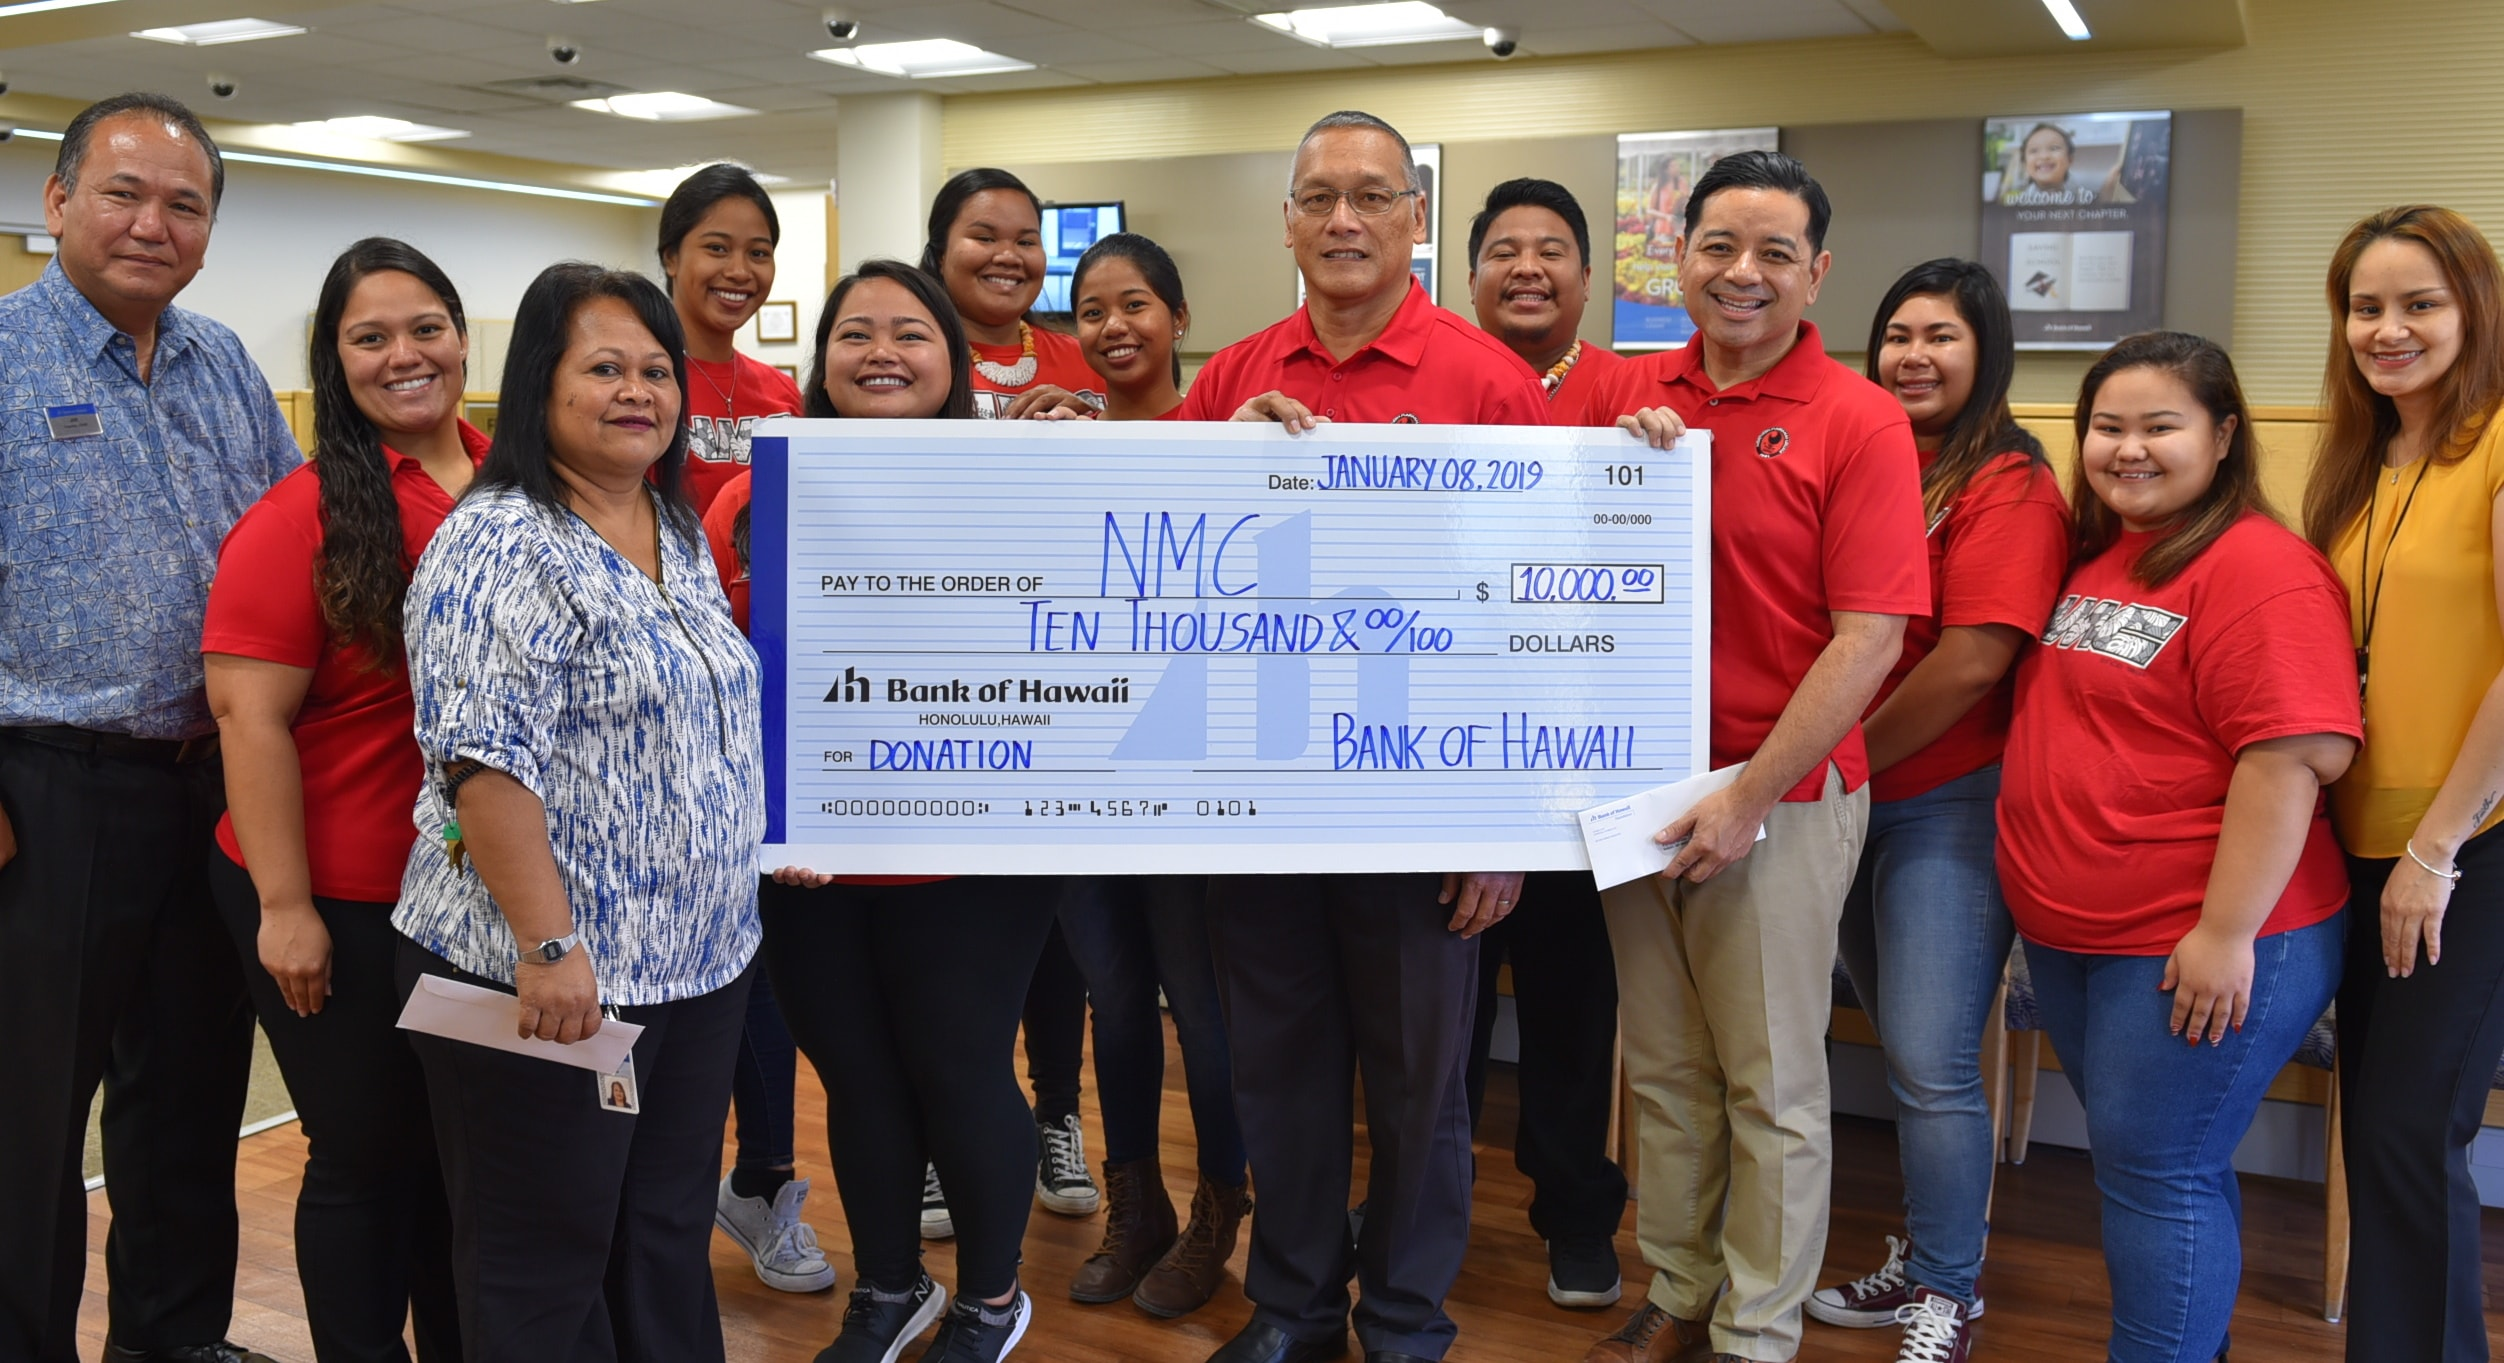 Bank of Hawaii donated $10,000 to Northern Marianas College. The donation check was presented by Rose Sumor, BOH Branch Manager (3rd from left), Joseph P. Fujihira, Officer & Assistant Branch Manager (1st from left), Joanne H. Aldan, Officer & Assistant Branch Manager (far right), and received by NMC BOR Chair, Charles Cepeda (center), NMC Interim President, Frankie Eliptico (4th from right), and students and staff of NMC.